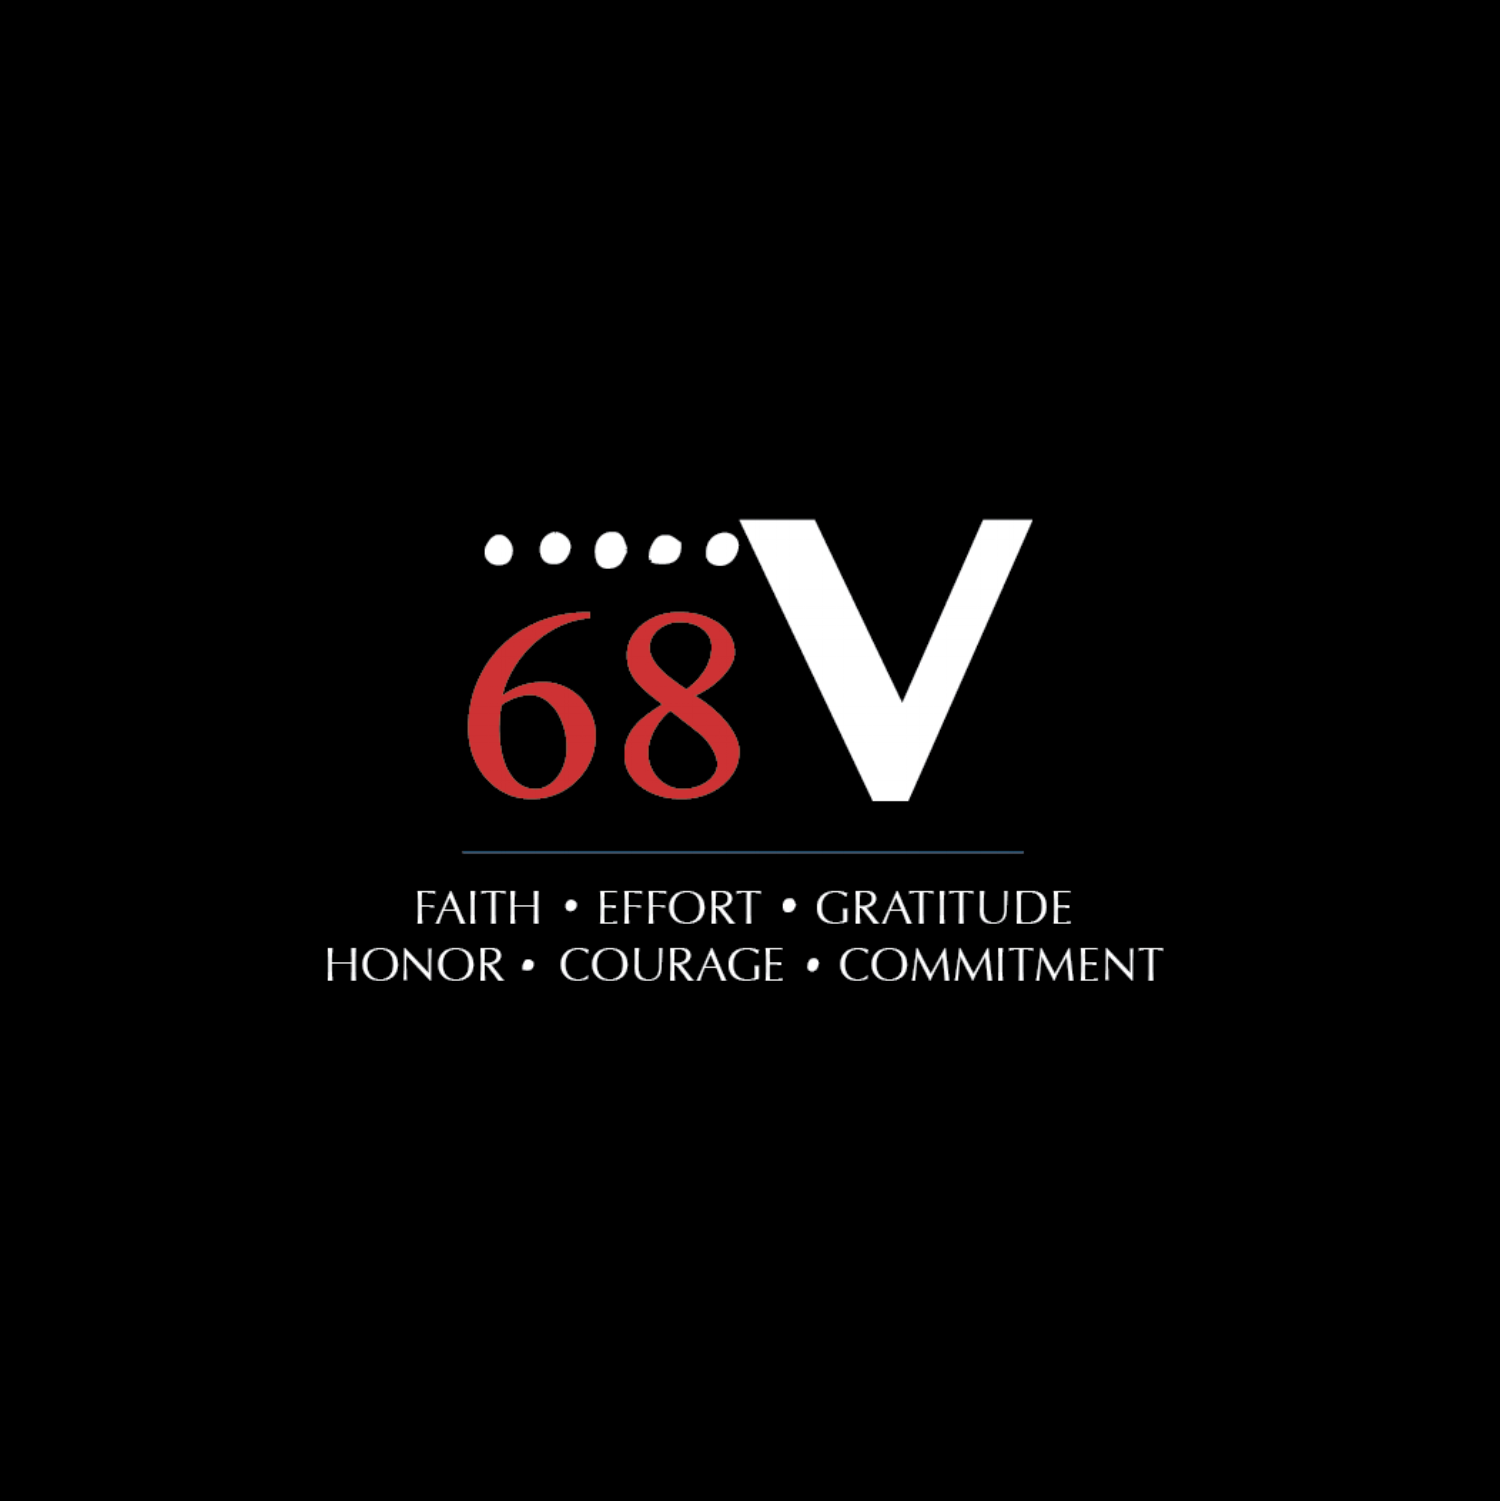 68V_LiveType-Values-full color-blk bkgrnd-01.png